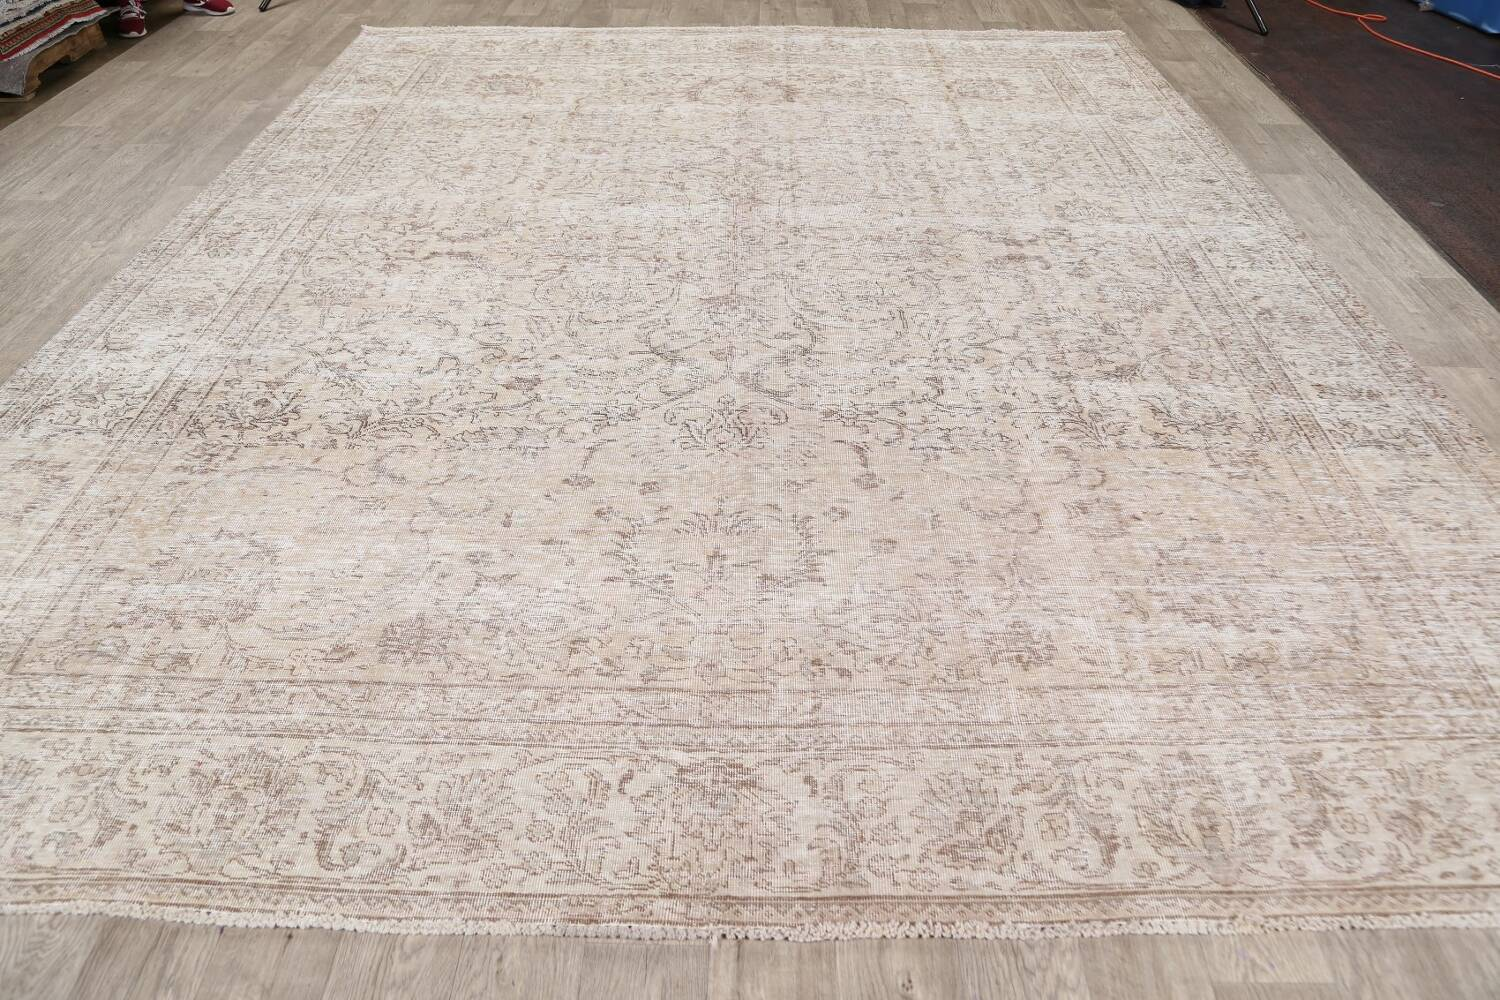 Antique Muted Floral Tabriz Persian Area Rug 9x12 image 17